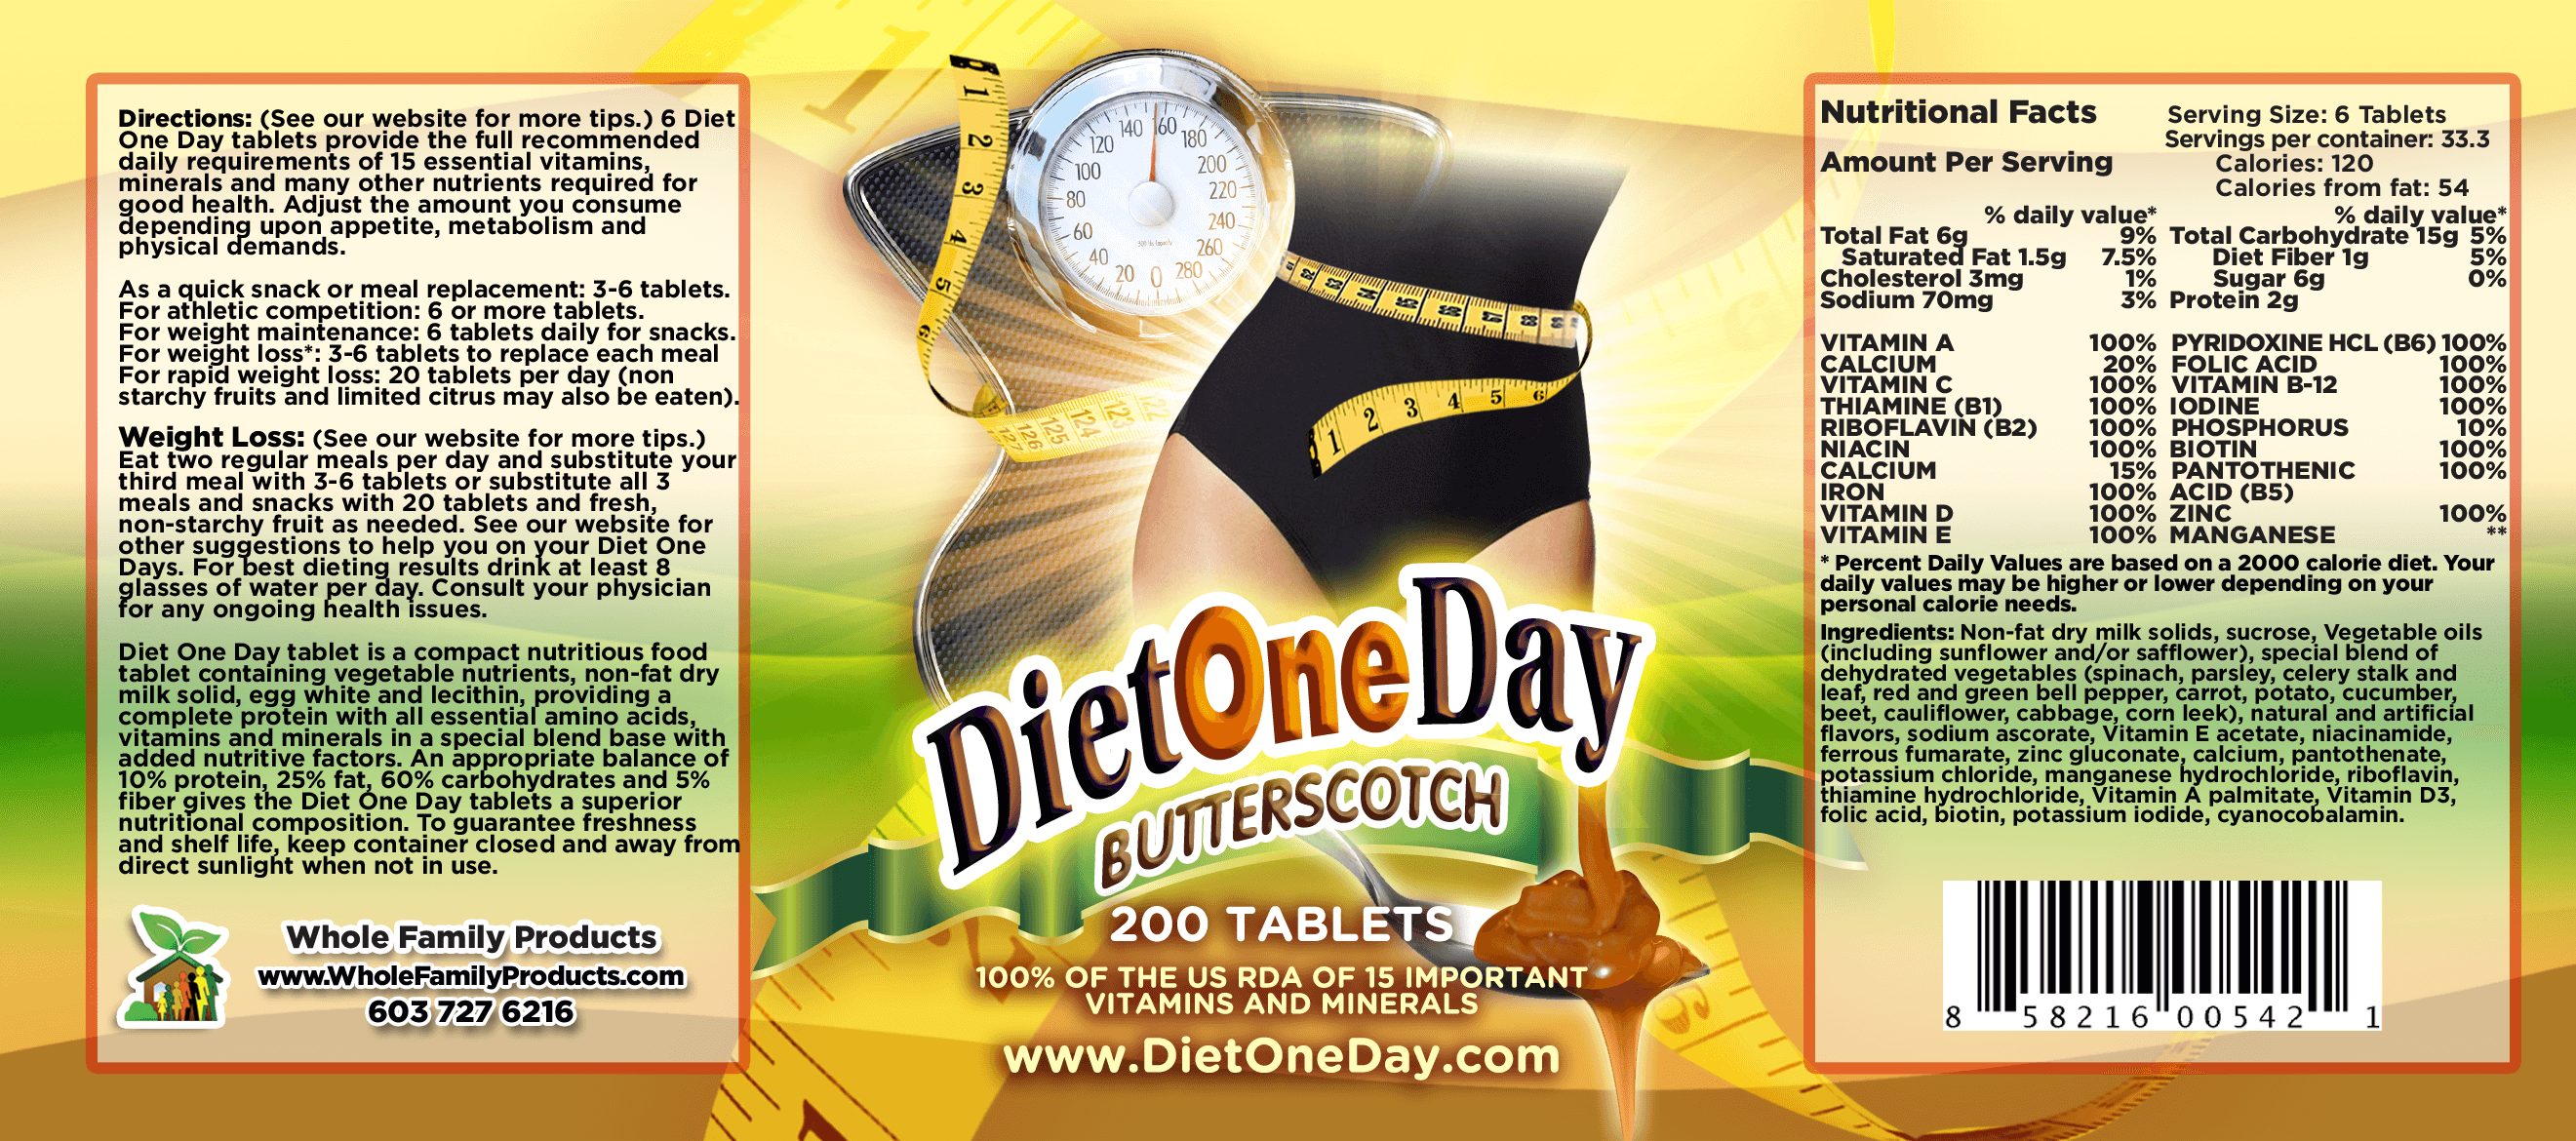 Diet One Day Wafers Butterscotch 200ct Product Label